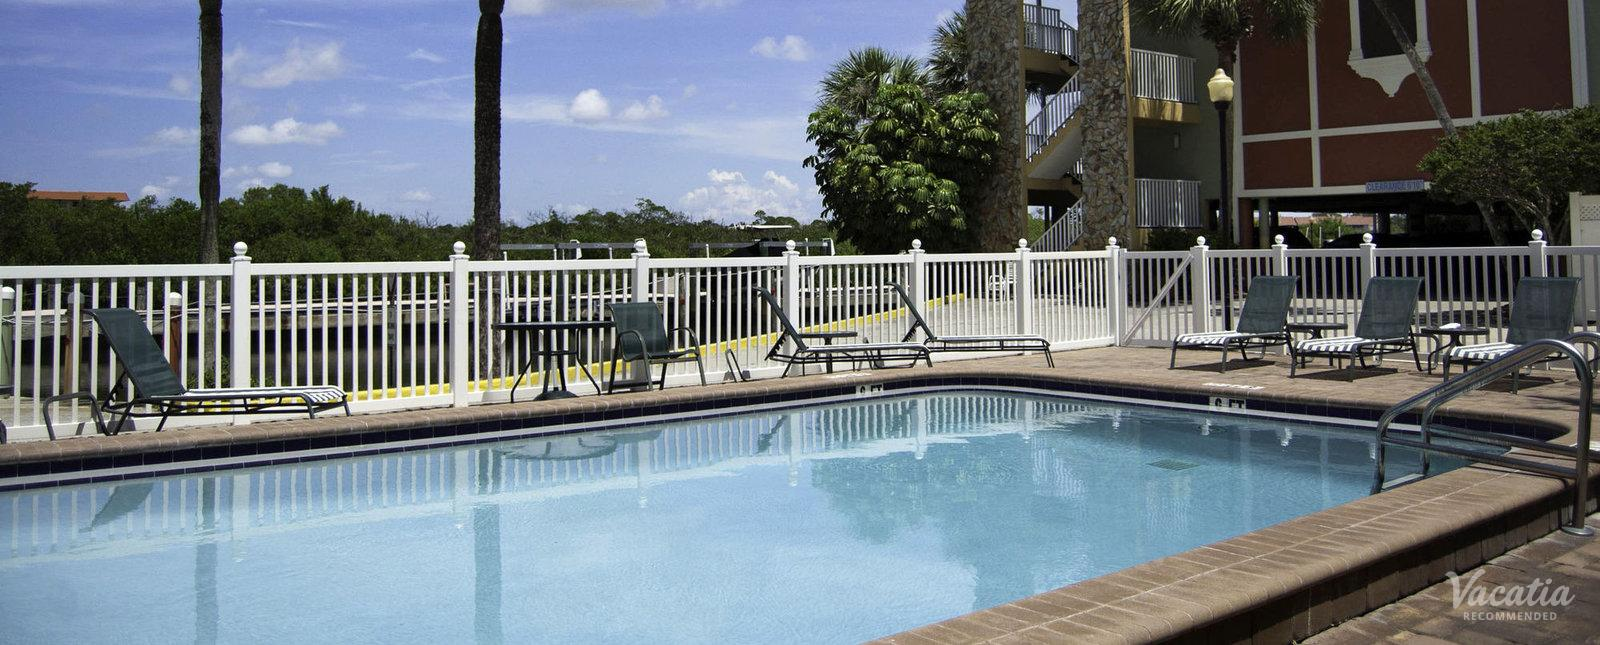 Legacy Vacation Resorts Indian Shores Pool